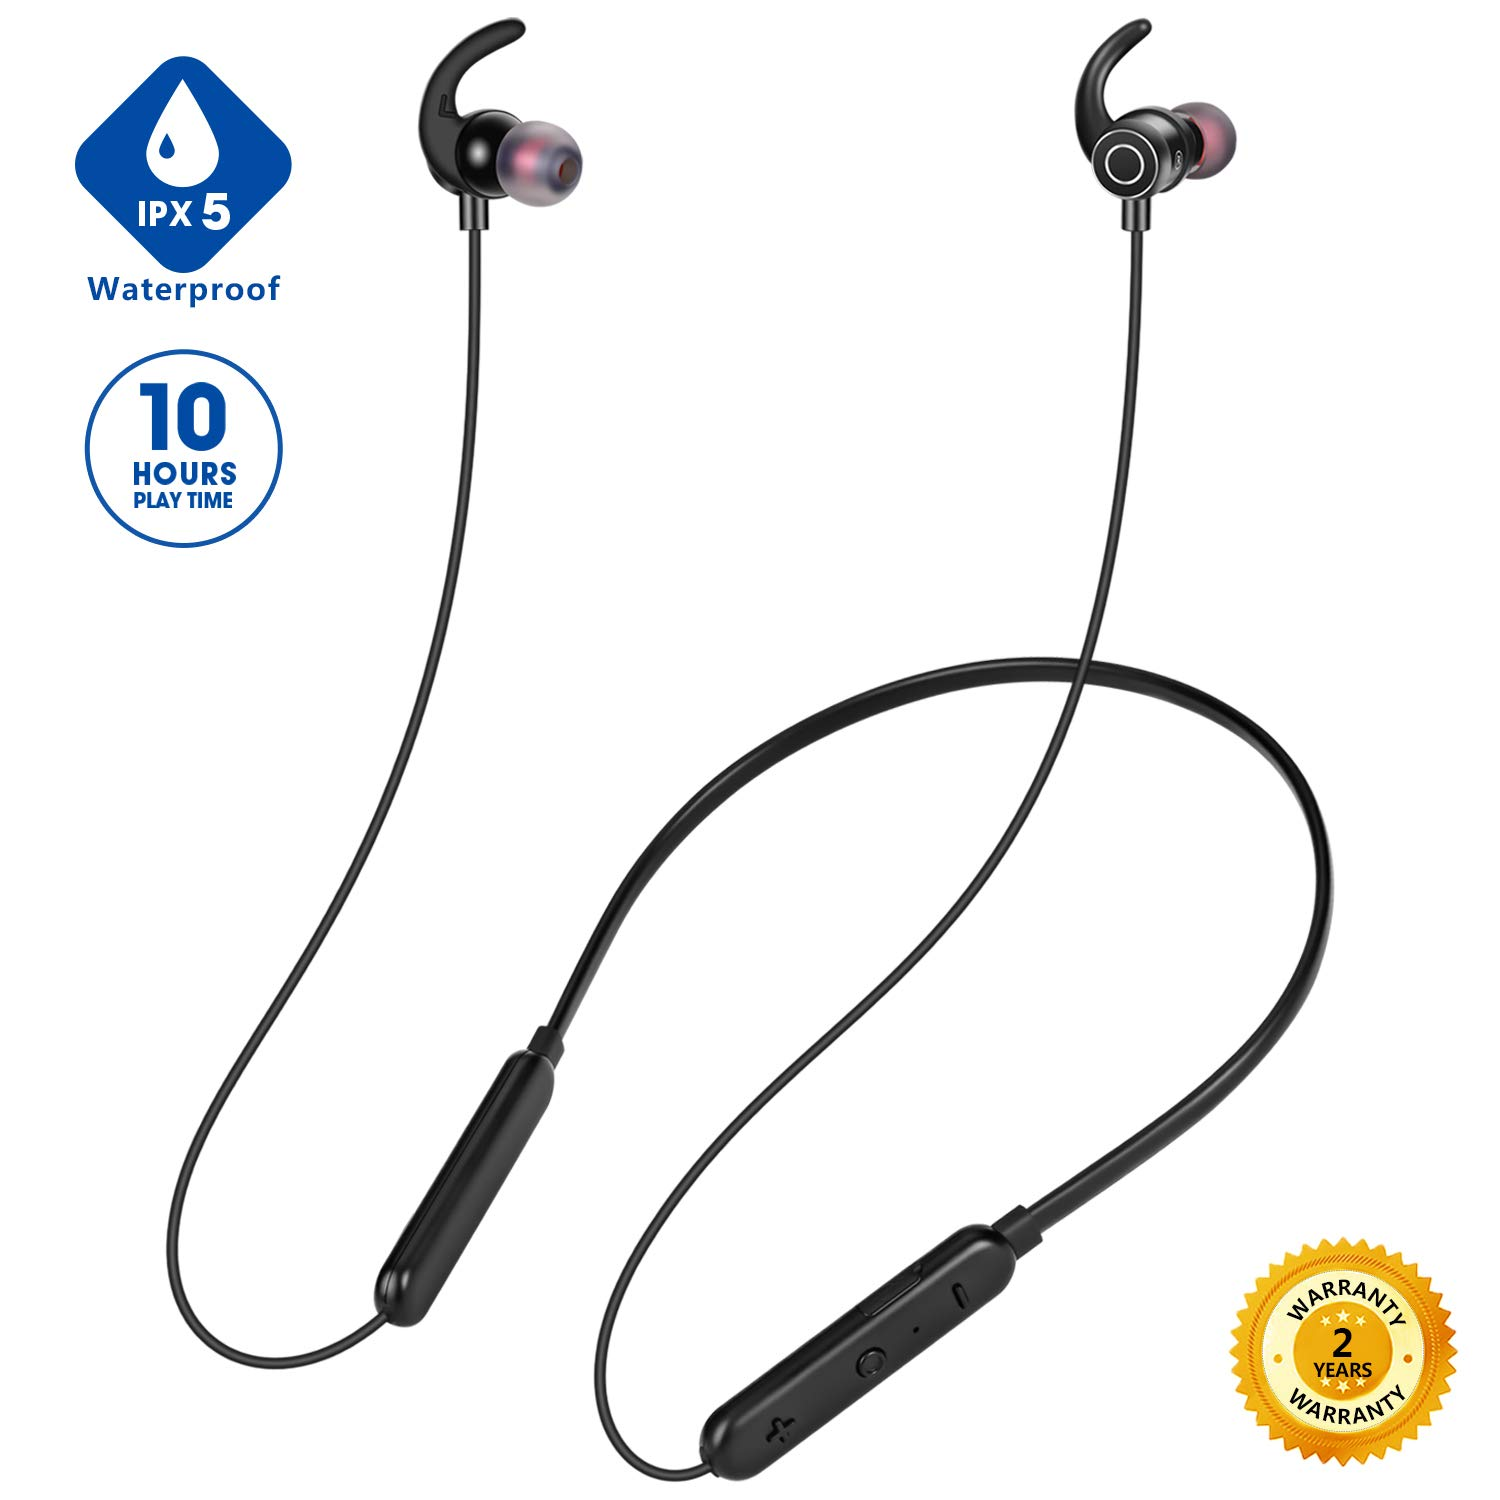 Neckband Bluetooth Headphones for Running, Upgraded Wireless Headphones  with Mic for iPhone Android, IPX5 Sweatproof Bluetooth Earbuds Wireless for